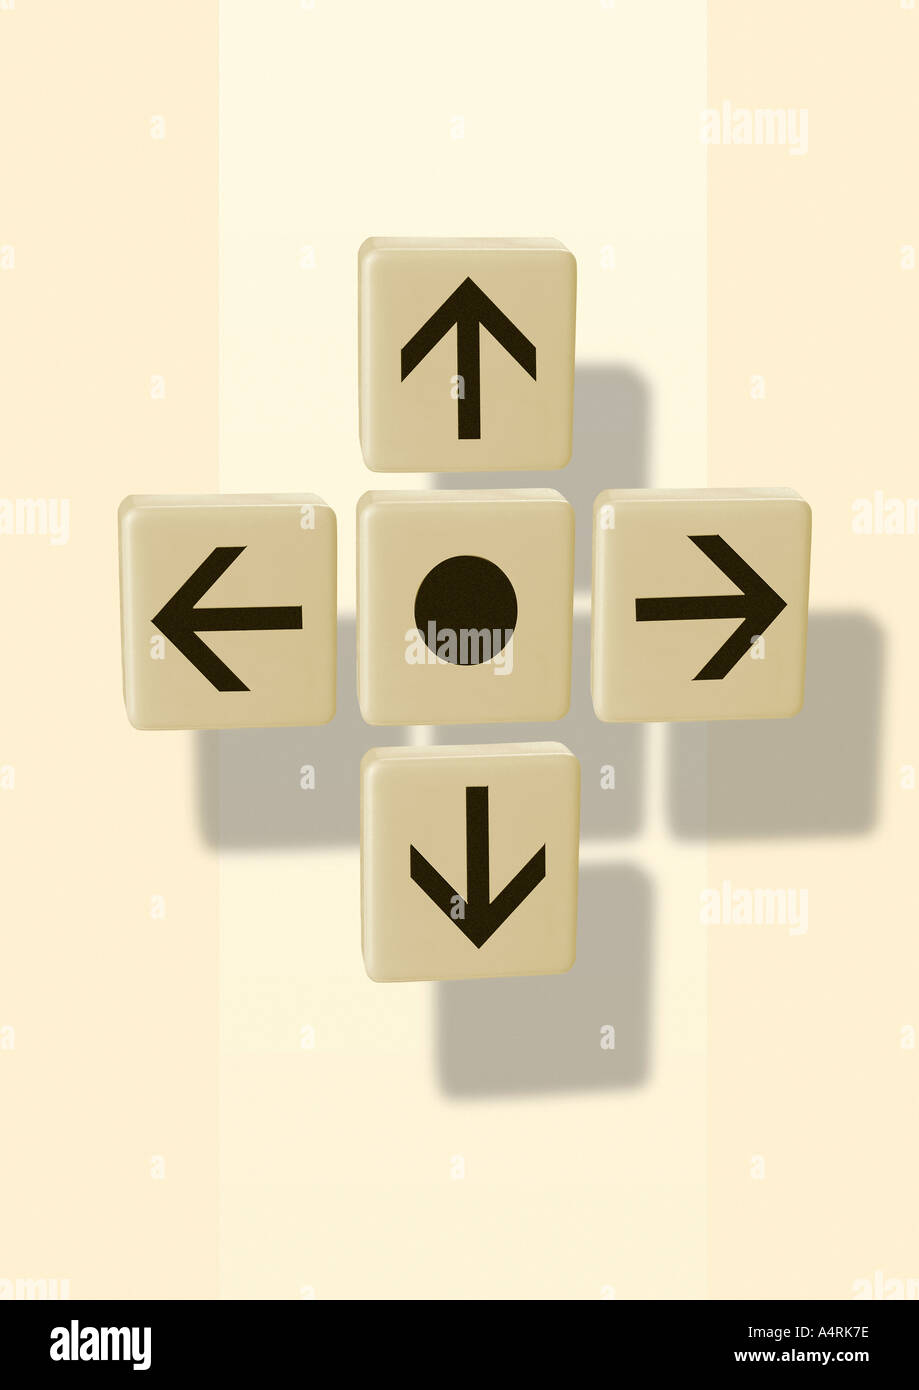 Arrows in 4 directions Pfeile in 4 Himmelsrichtungen Stock Photo